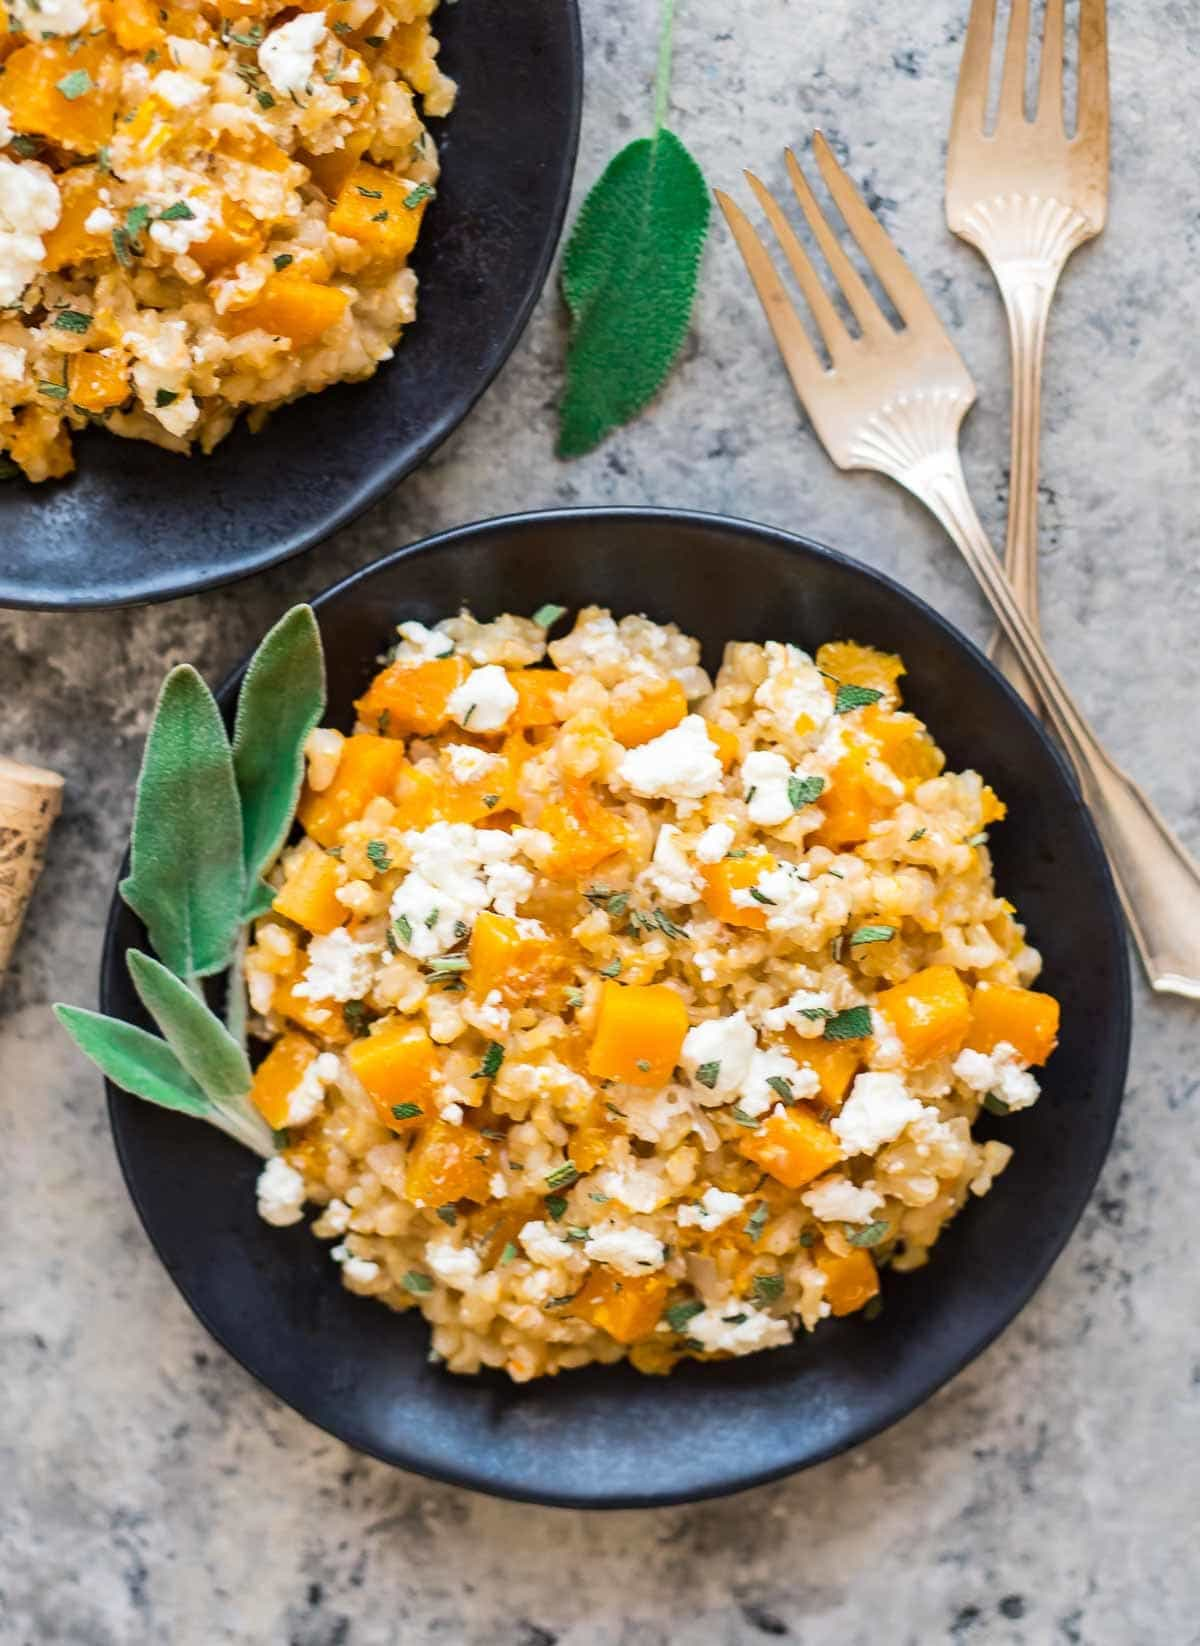 Healthy Slow Cooker Risotto with Butternut Squash, Goat Cheese, and Sage. This is the BEST risotto. Easy, no stir crock pot method with brown rice. Our whole family loved it! Recipe at wellplated.com | @wellplated